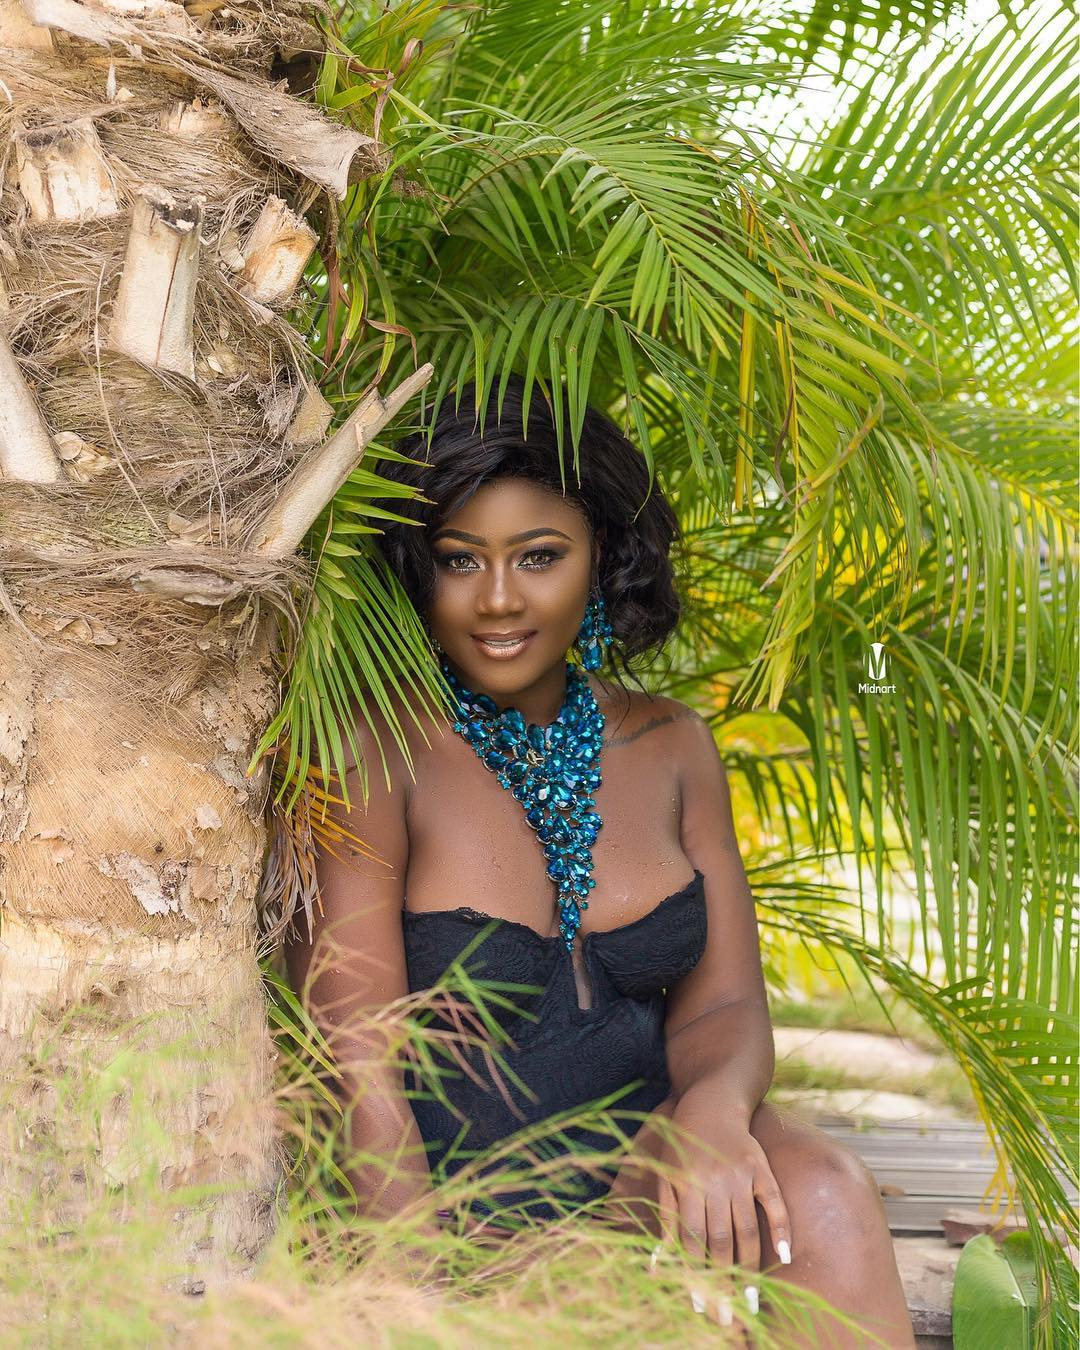 Ghanaian Actress Salma Mumin Covers Her Nakedness With Water Melon To Celebrate Her Birthday Photos